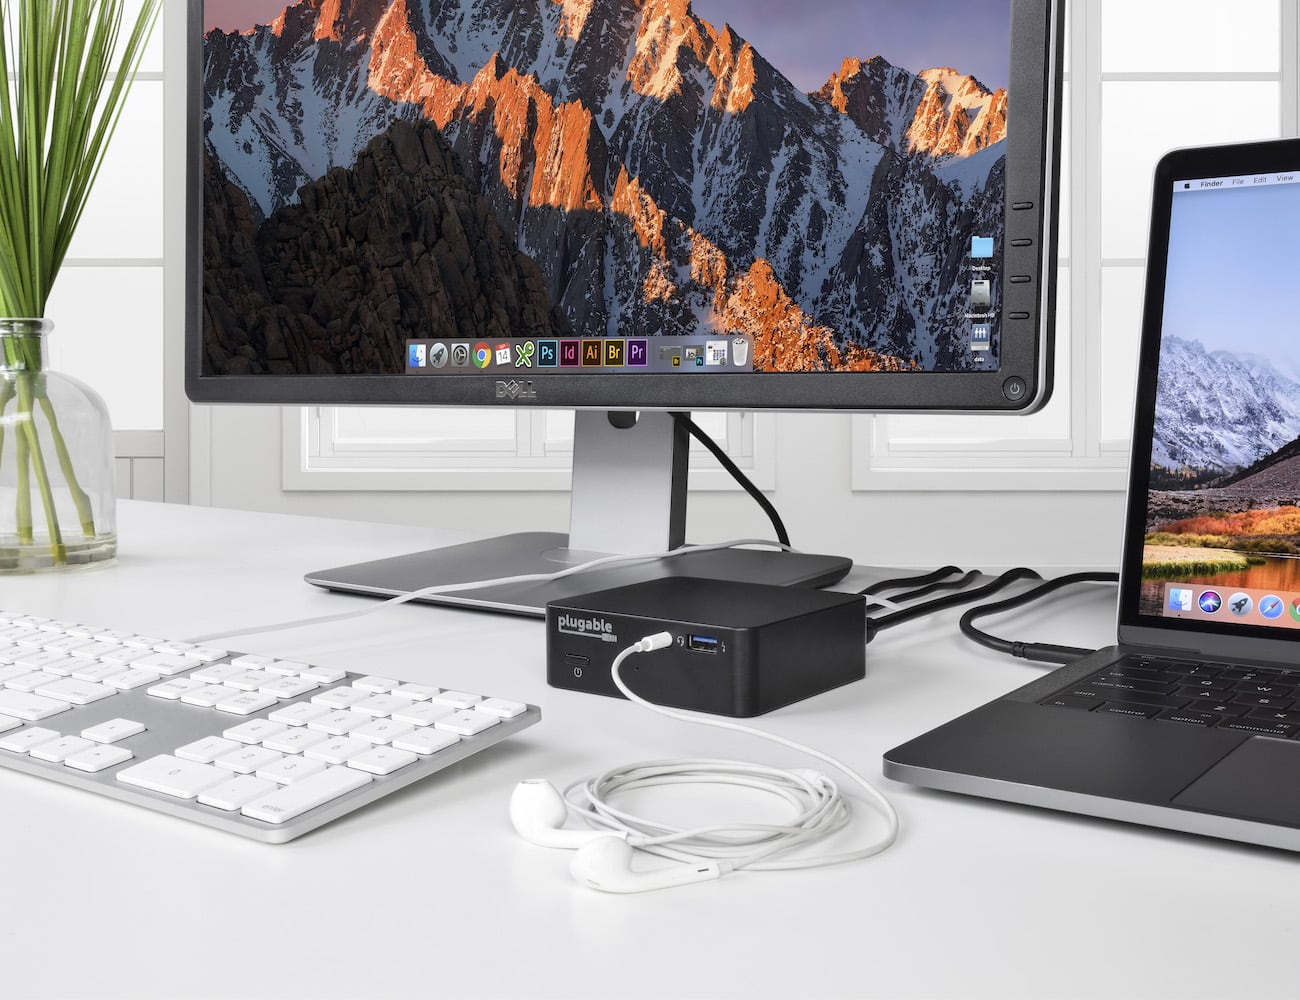 Plugable Mini Docking Station gives you more screen to work with